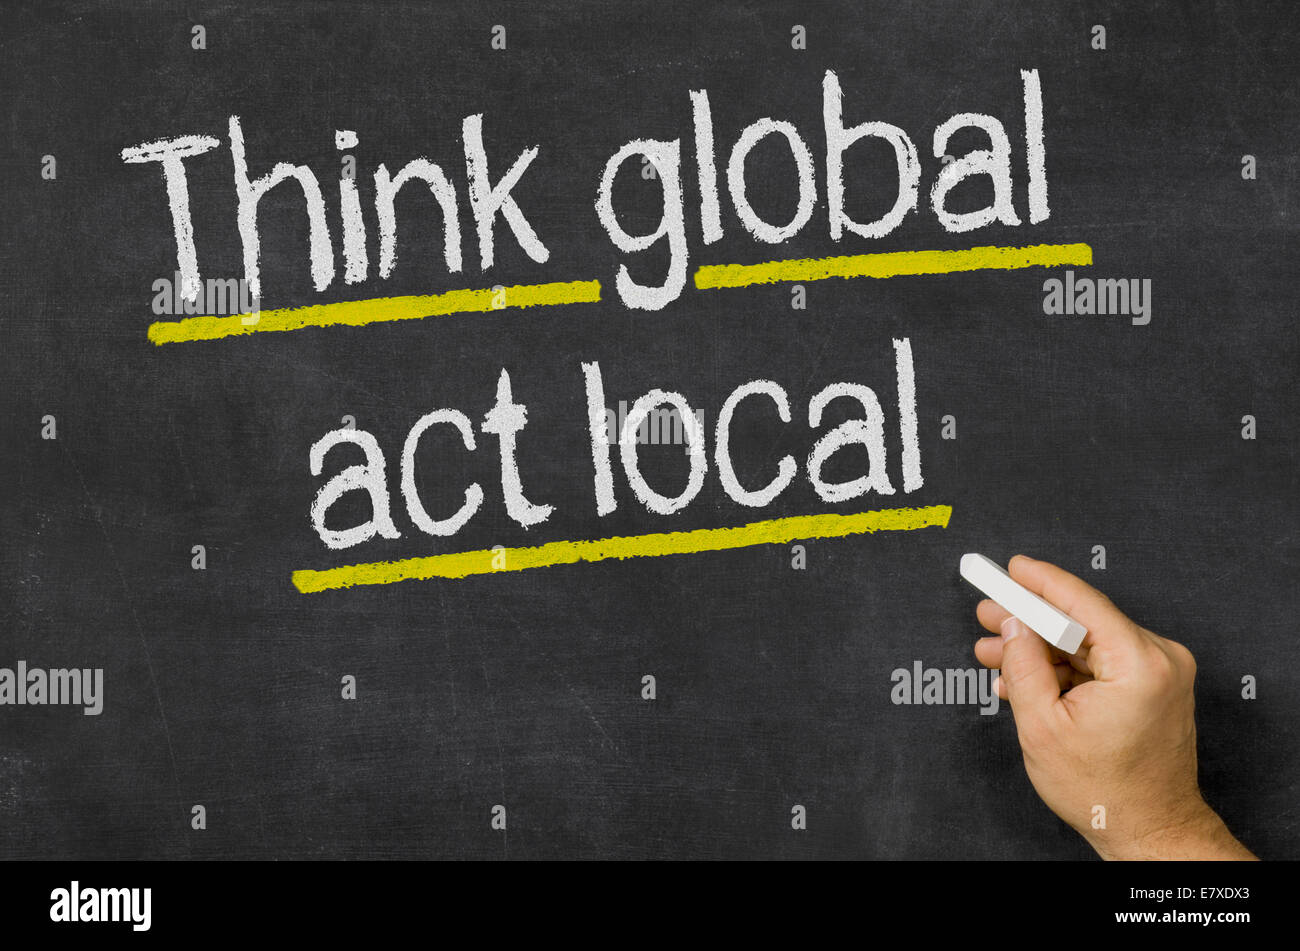 Think global - act local - Stock Image